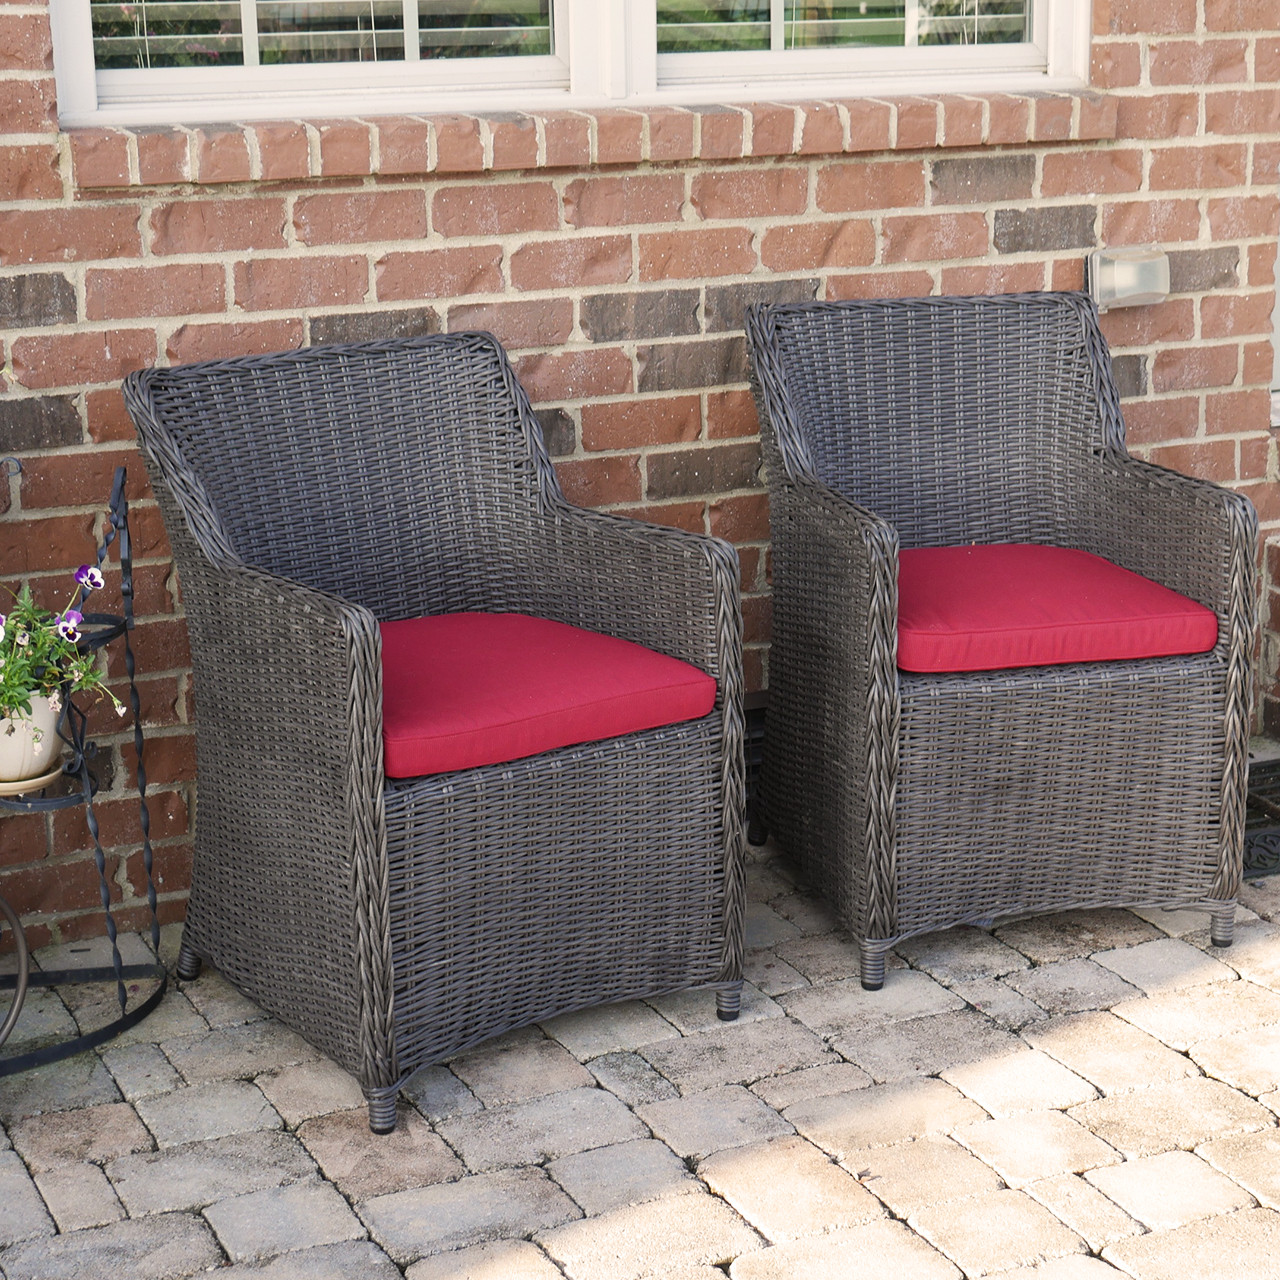 Wicker Patio Chair Sea Island Wicker Patio Lounge Chair Set With Red Cushion Set Of 2